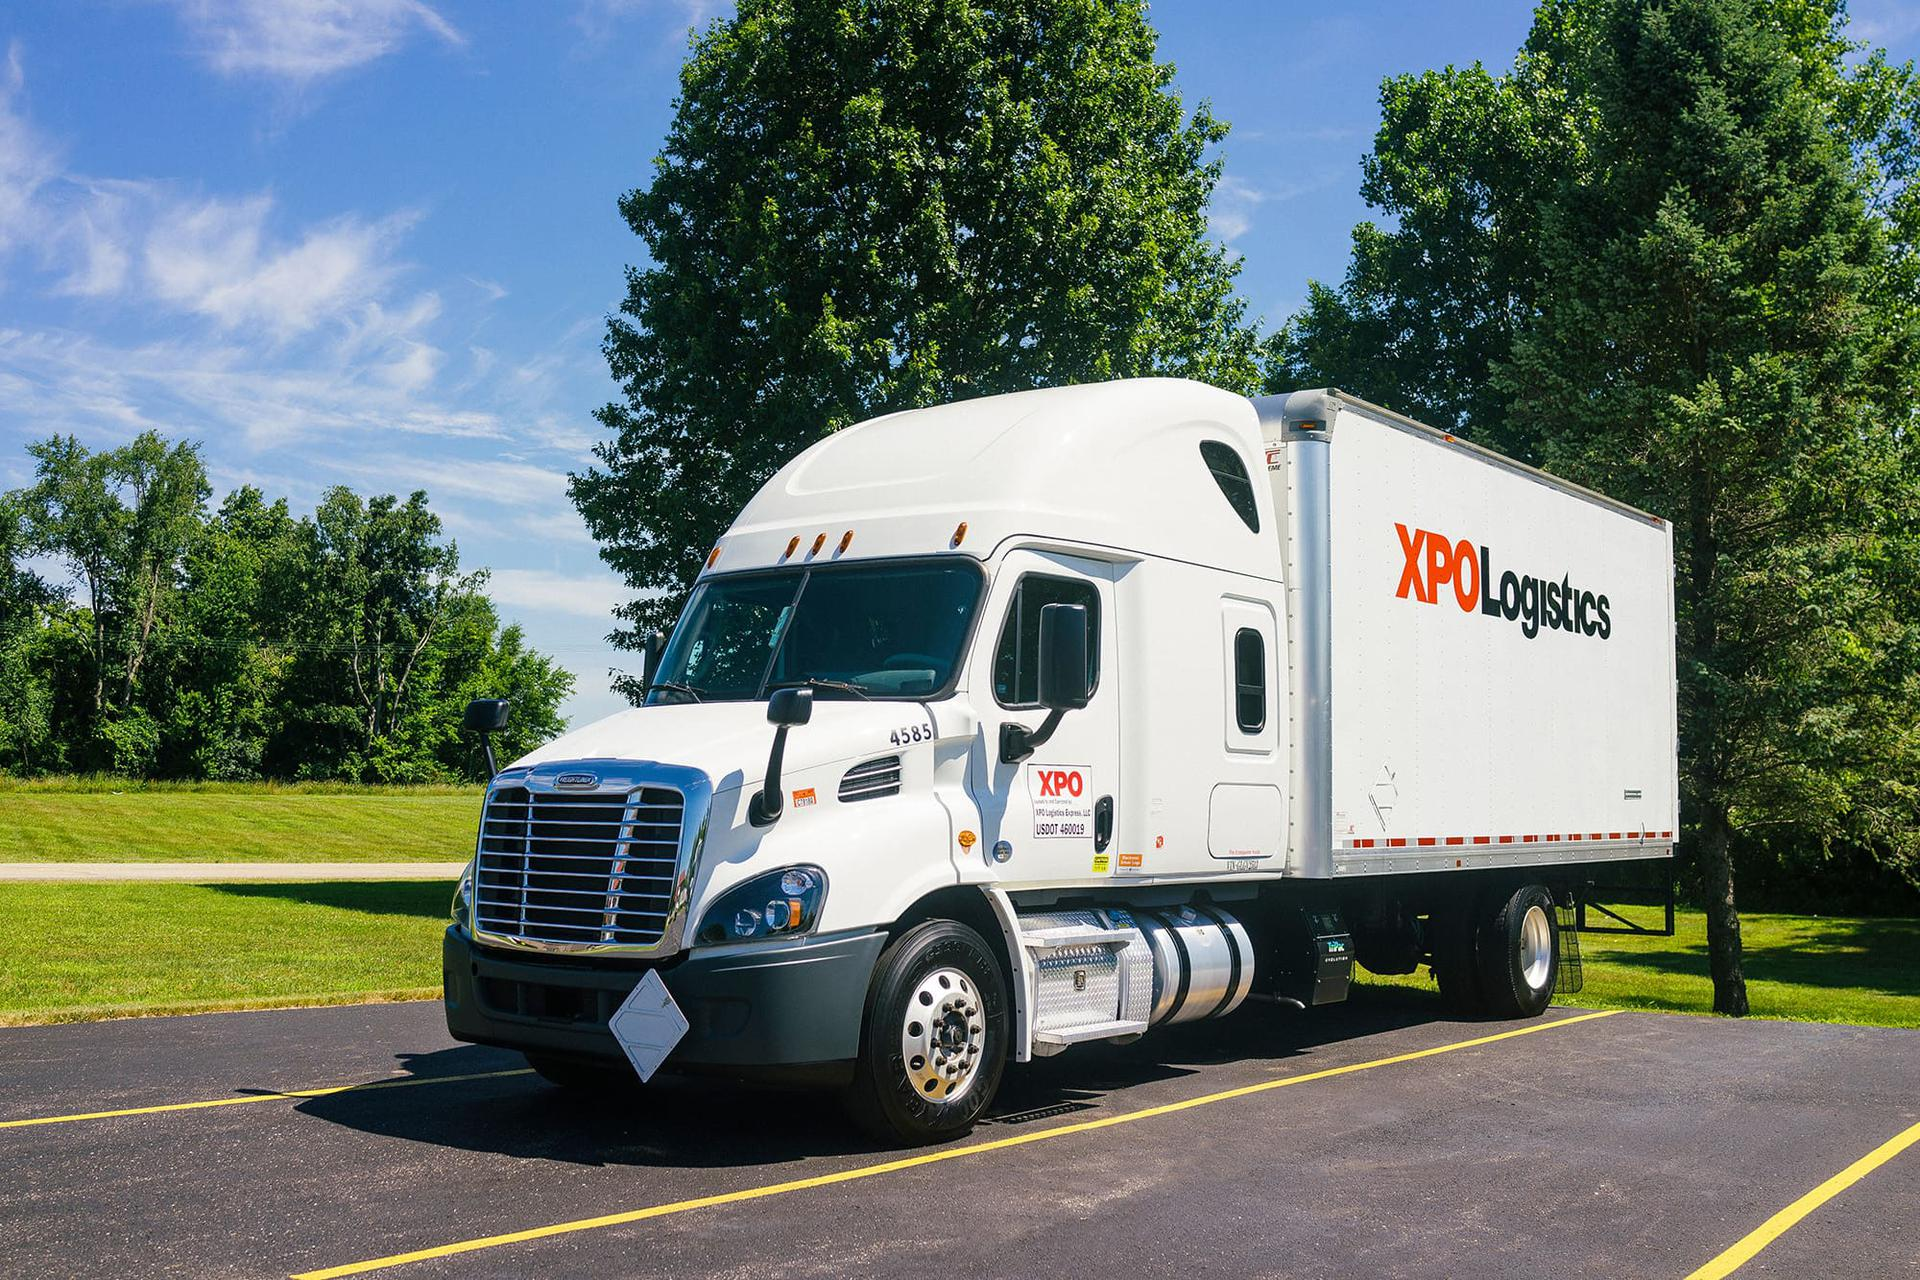 XPO expedite truck parked